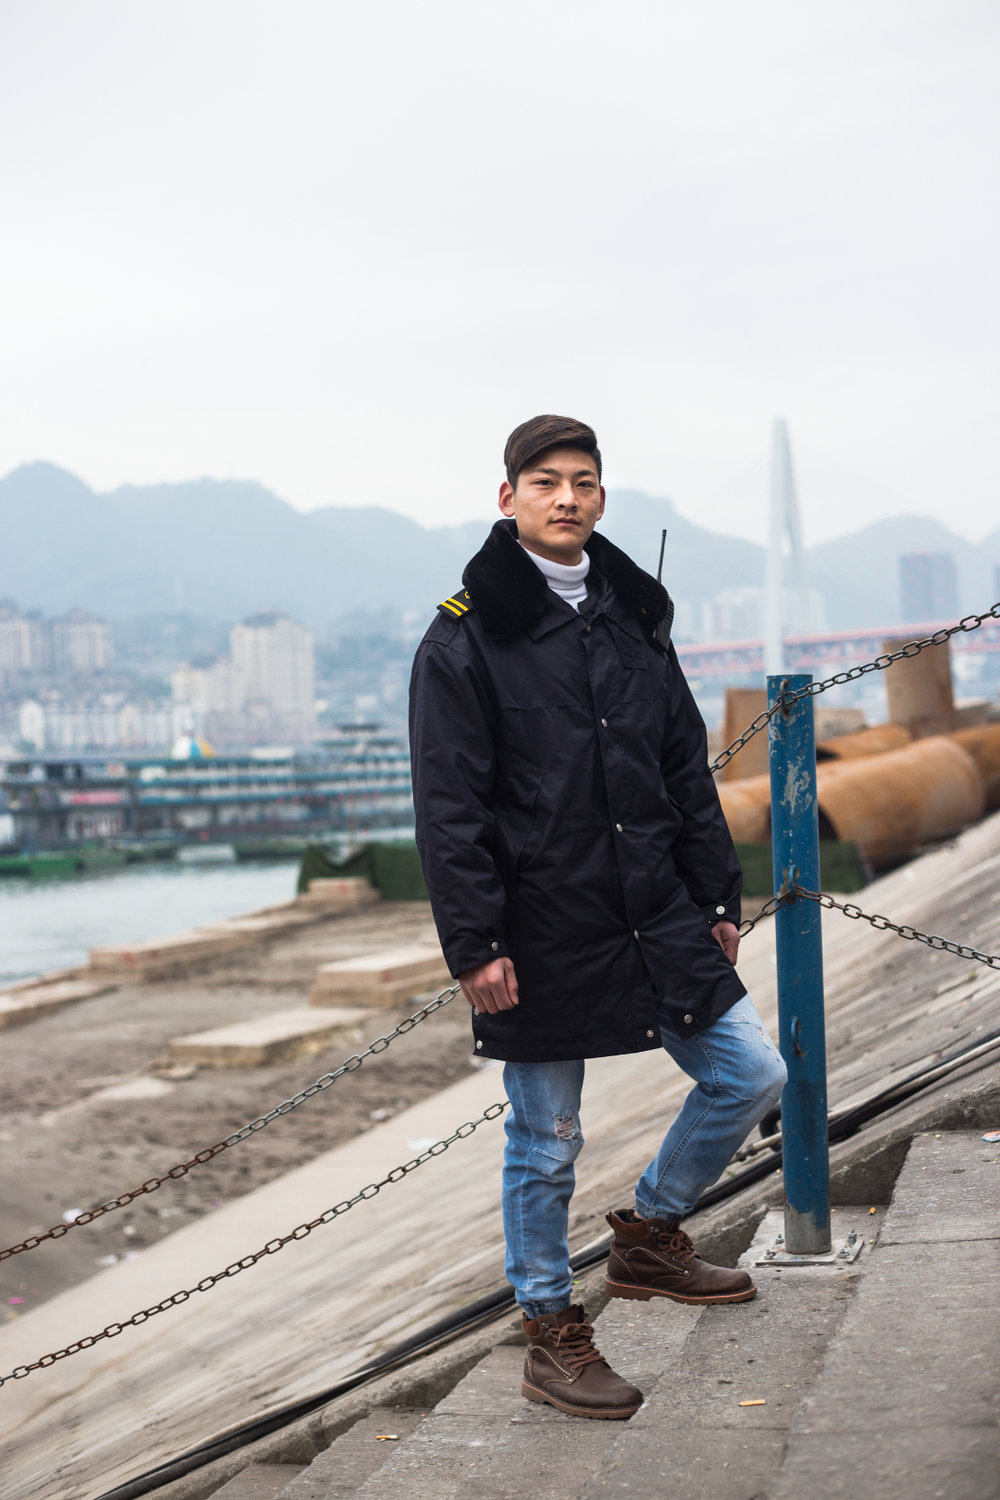 """There's a lot of of opportunity here. I've been here for six months, selling tickets for the tourists who want to go upriver.""  Song Yuen, Chongqing February 2017"